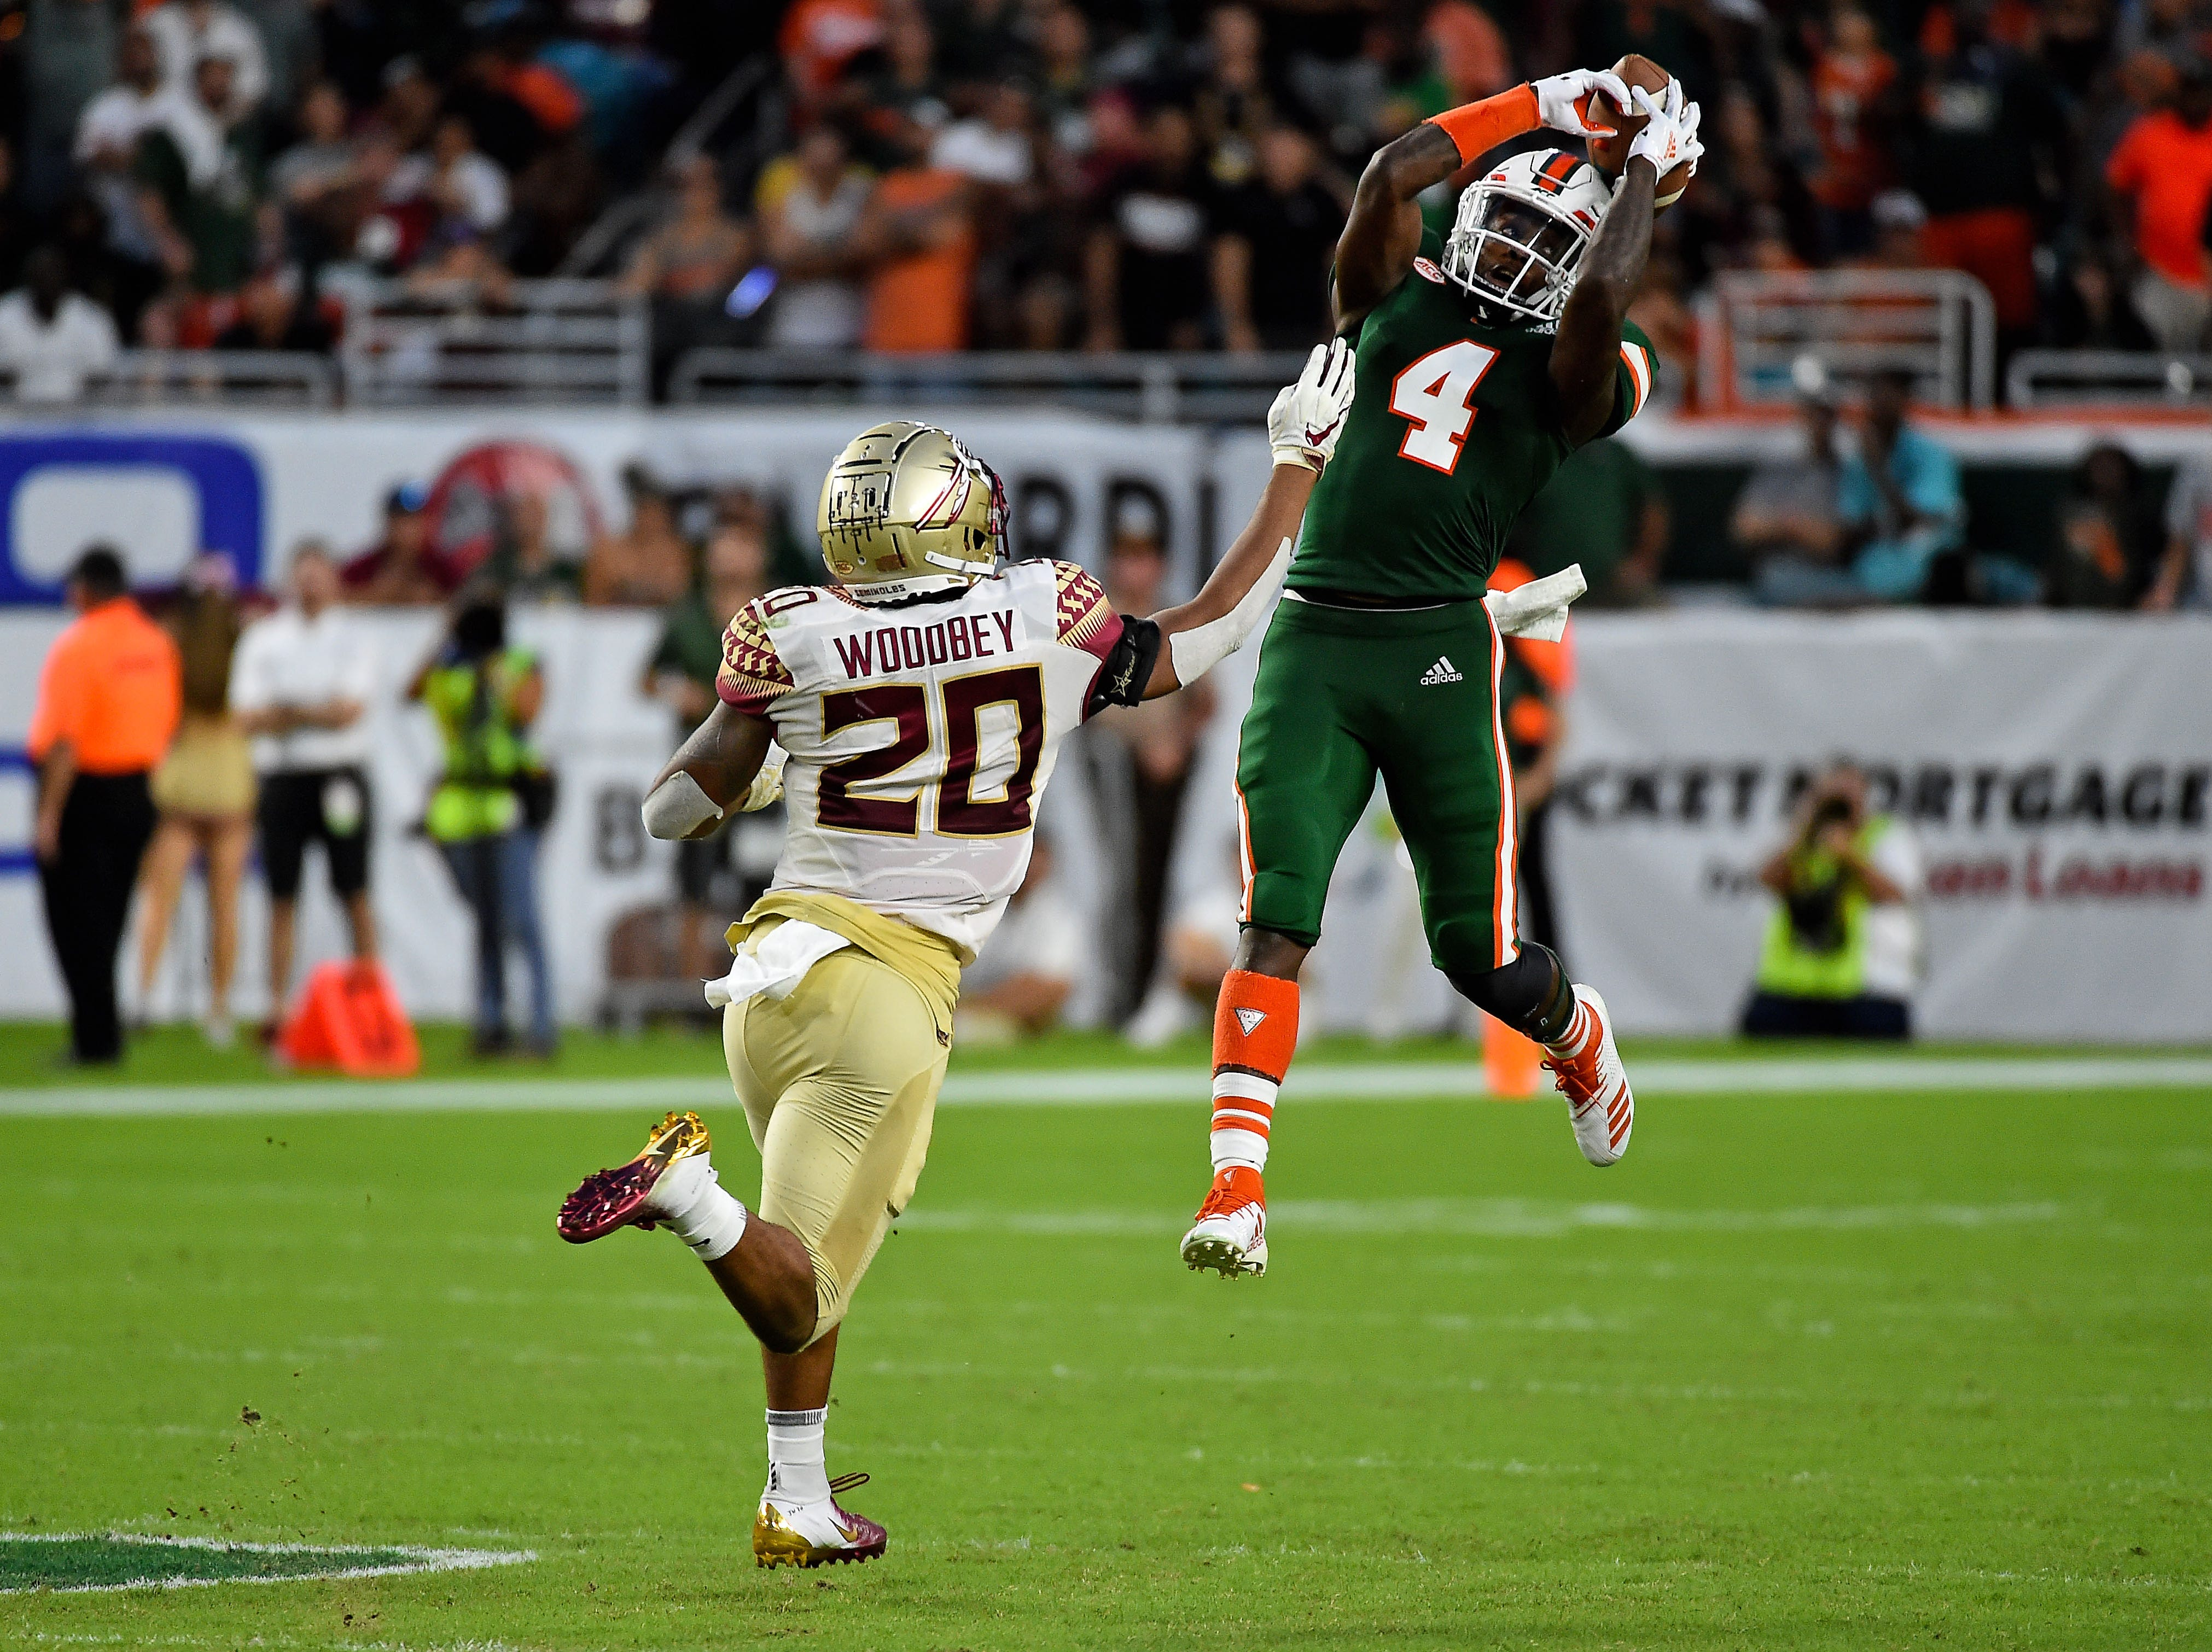 Oct 6, 2018; Miami Gardens, FL, USA; Miami Hurricanes wide receiver Jeff Thomas (4) makes a catch over Florida State Seminoles defensive back Jaiden Woodbey (20) during the second half at Hard Rock Stadium. Mandatory Credit: Jasen Vinlove-USA TODAY Sports